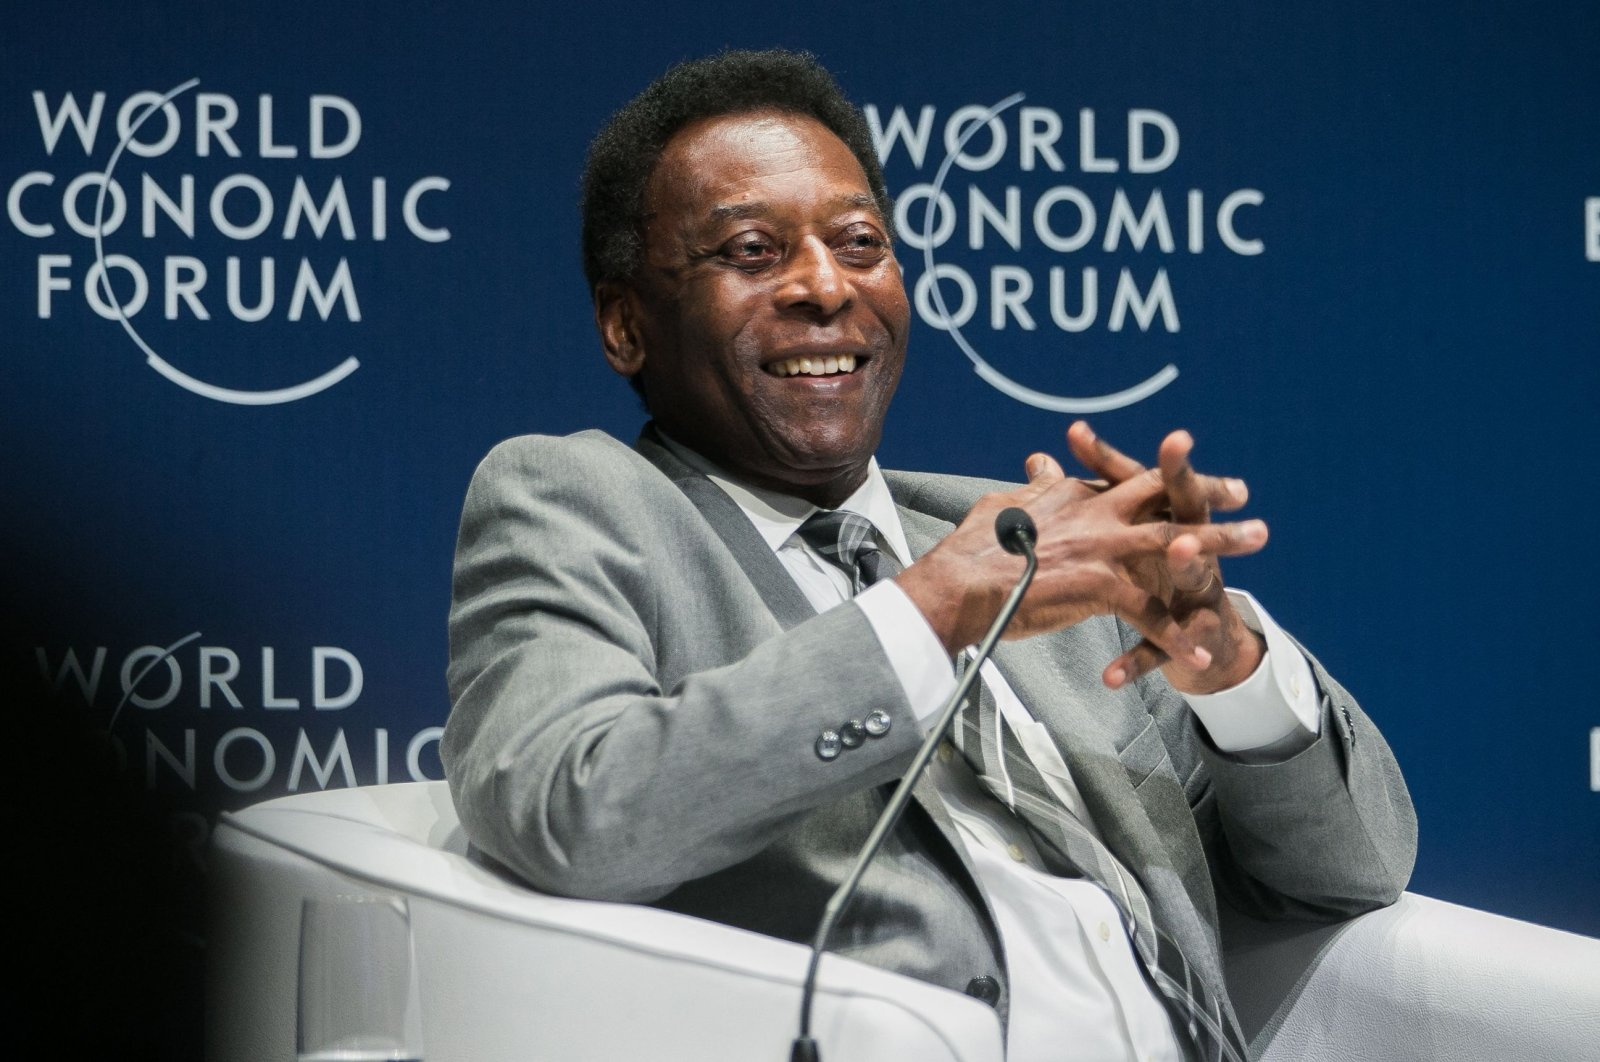 Brazilian football legend Pele smiles during the opening plenary at the World Economic Forum on Latin America 2018 in Sao Paulo, Brazil, March 14, 2018. (AFP File Photo)